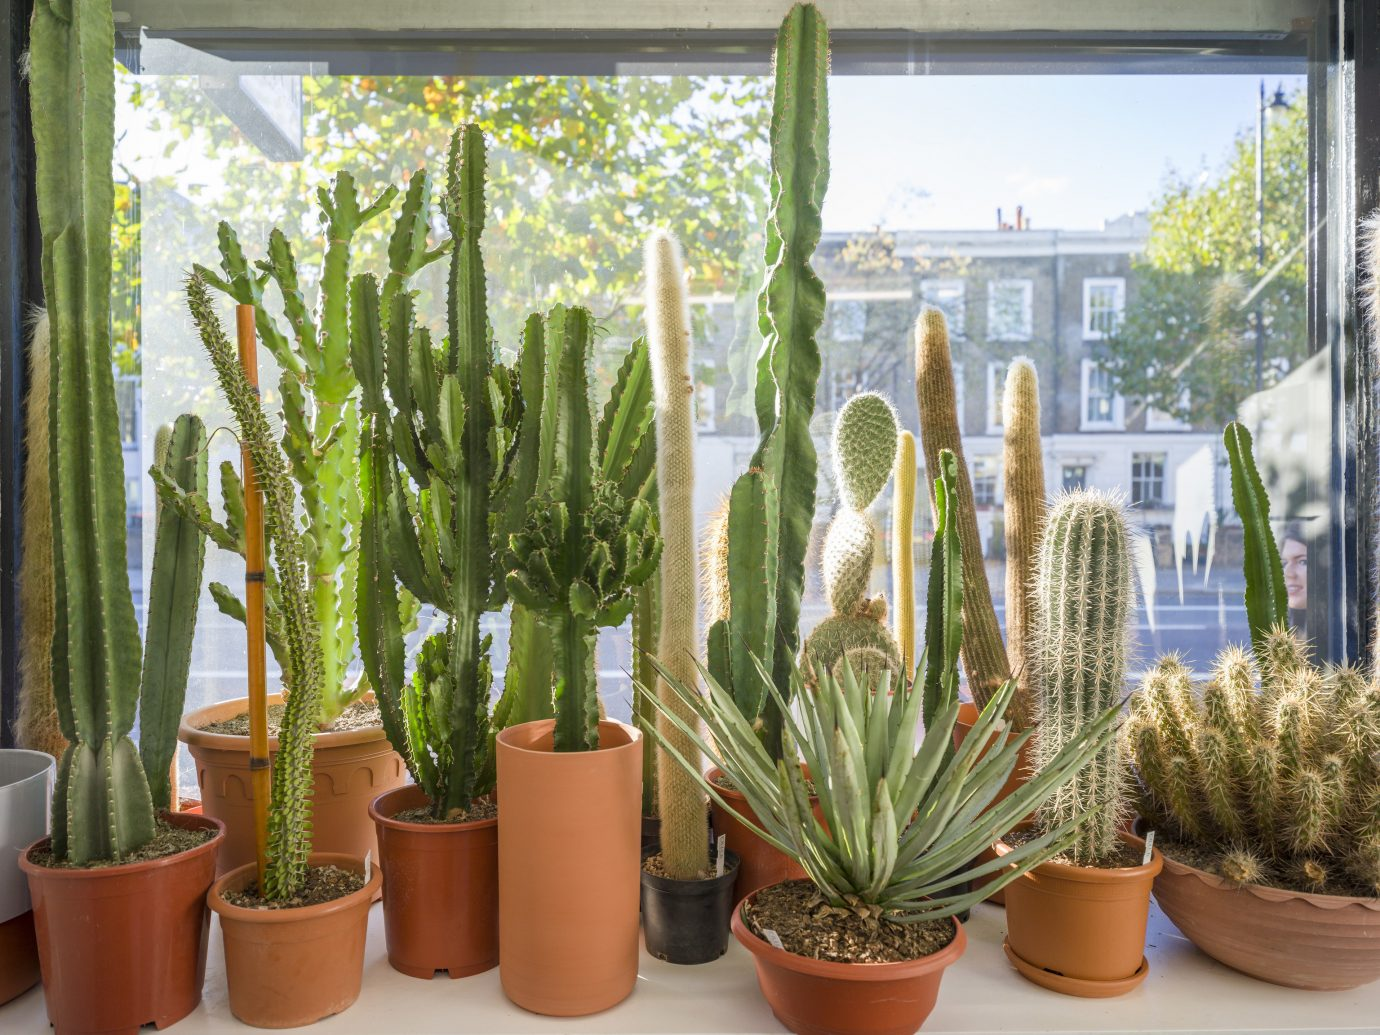 Offbeat Style + Design Travel Trends tree plant window cactus flowerpot hedgehog cactus houseplant flowering plant san pedro cactus caryophyllales agave palm several